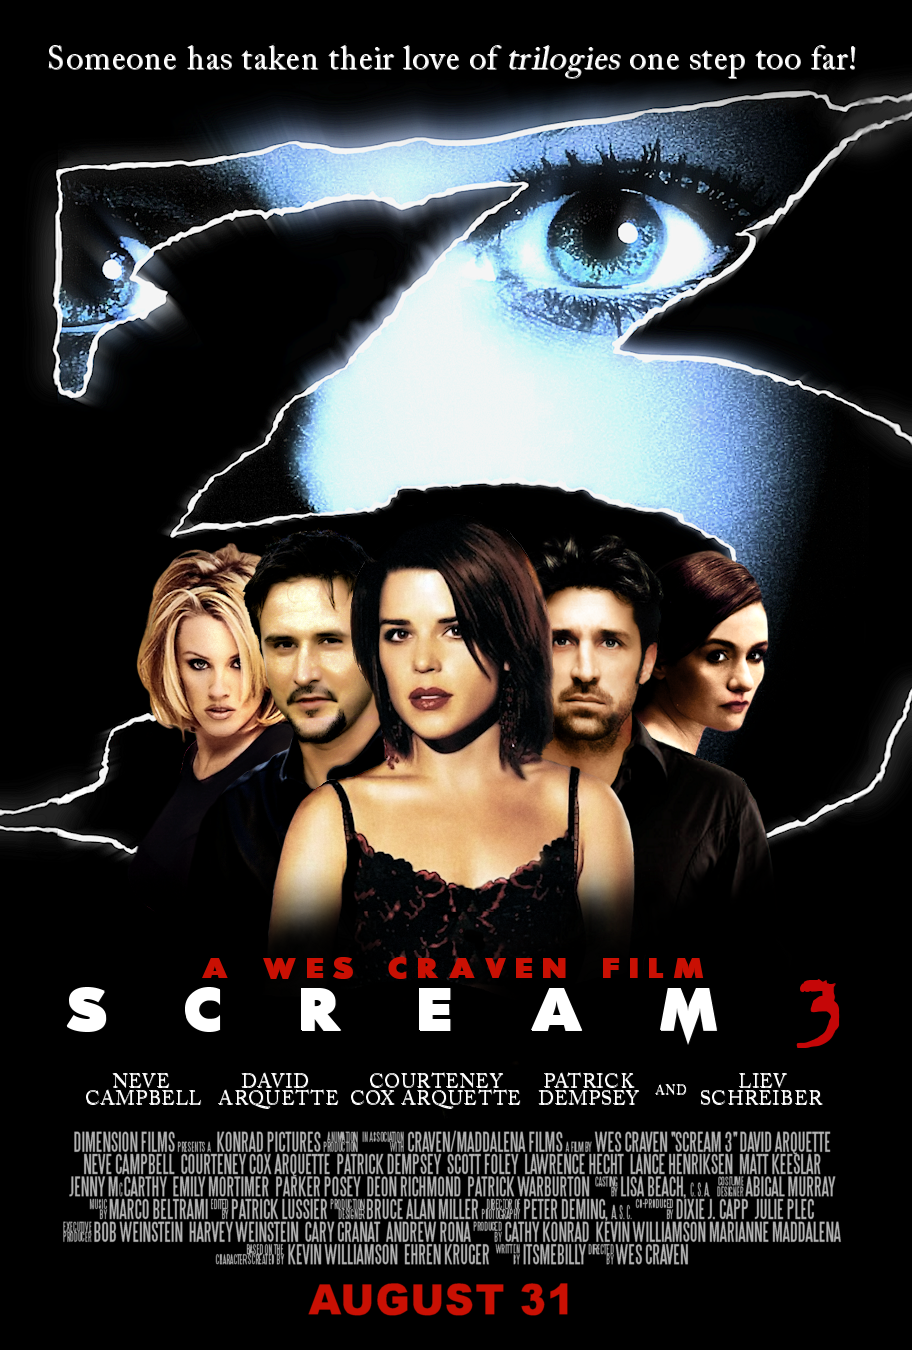 s1 e16 scream 3 2000 � now playing network